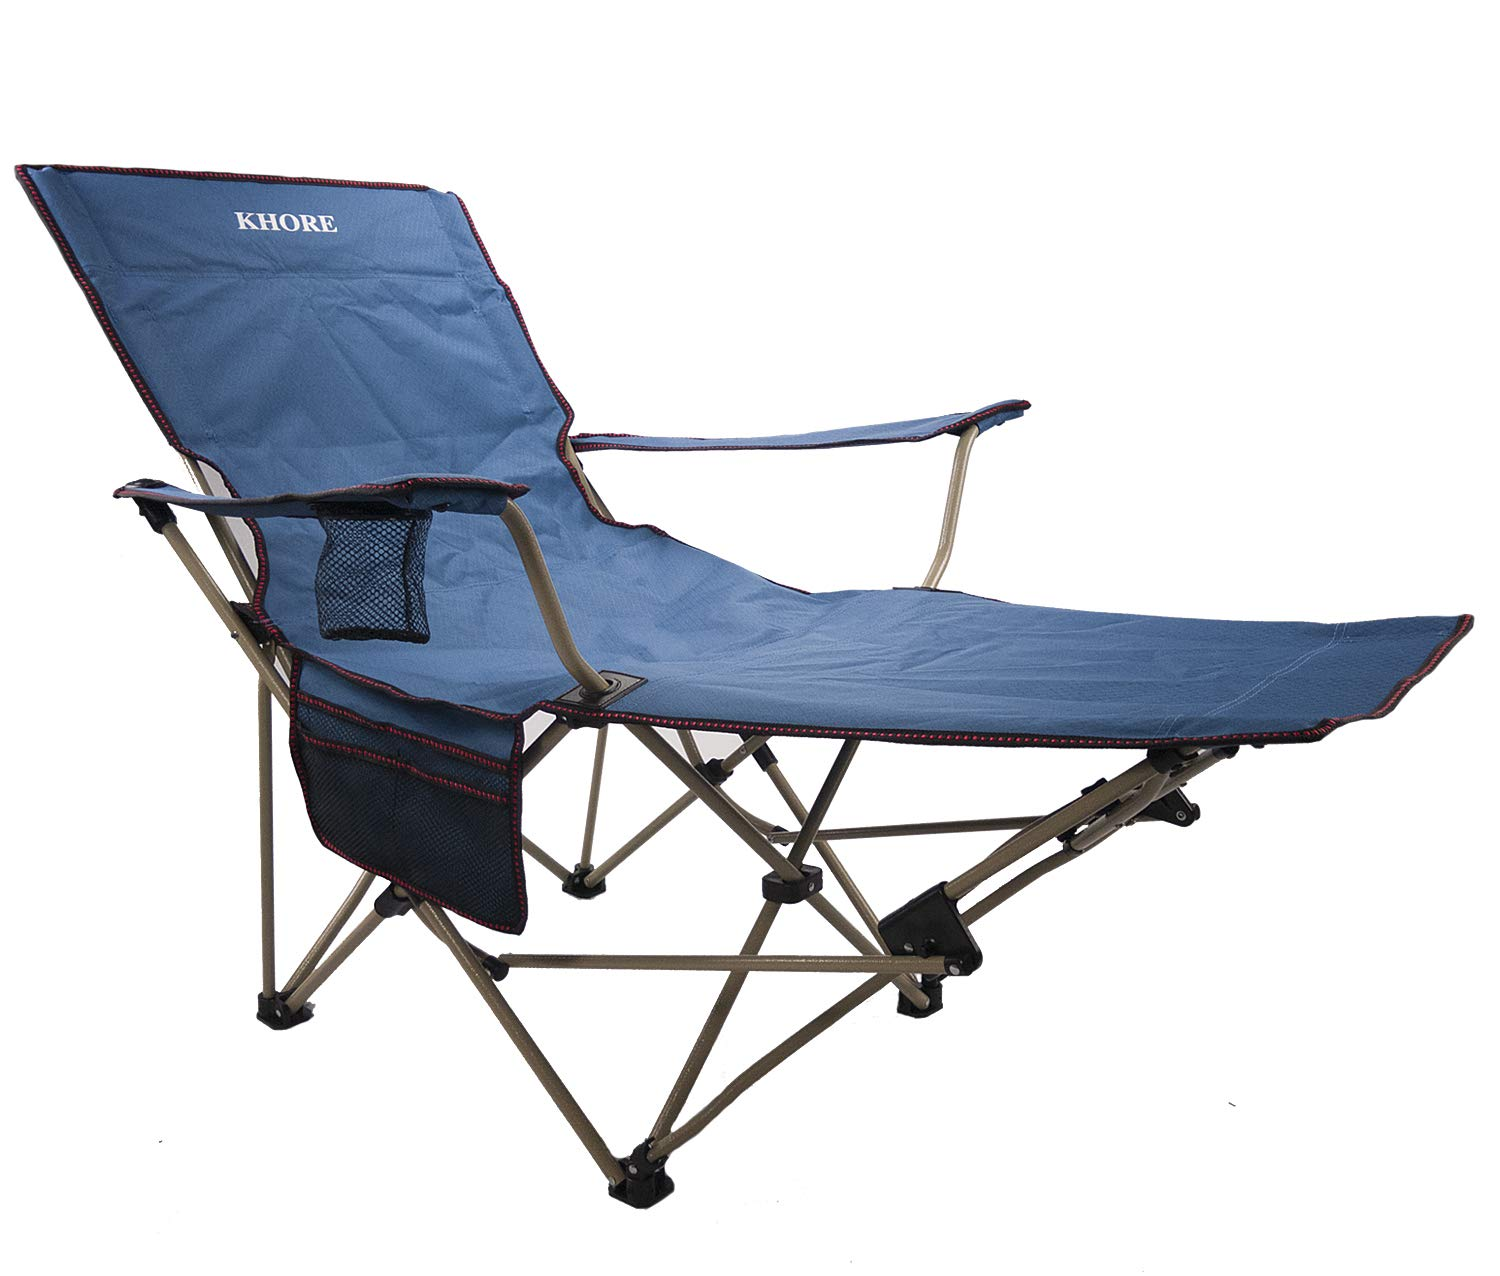 Khore Automaticly Adjustable Recliner Folding Camping Chair with Footrest (Blue) by KHORE